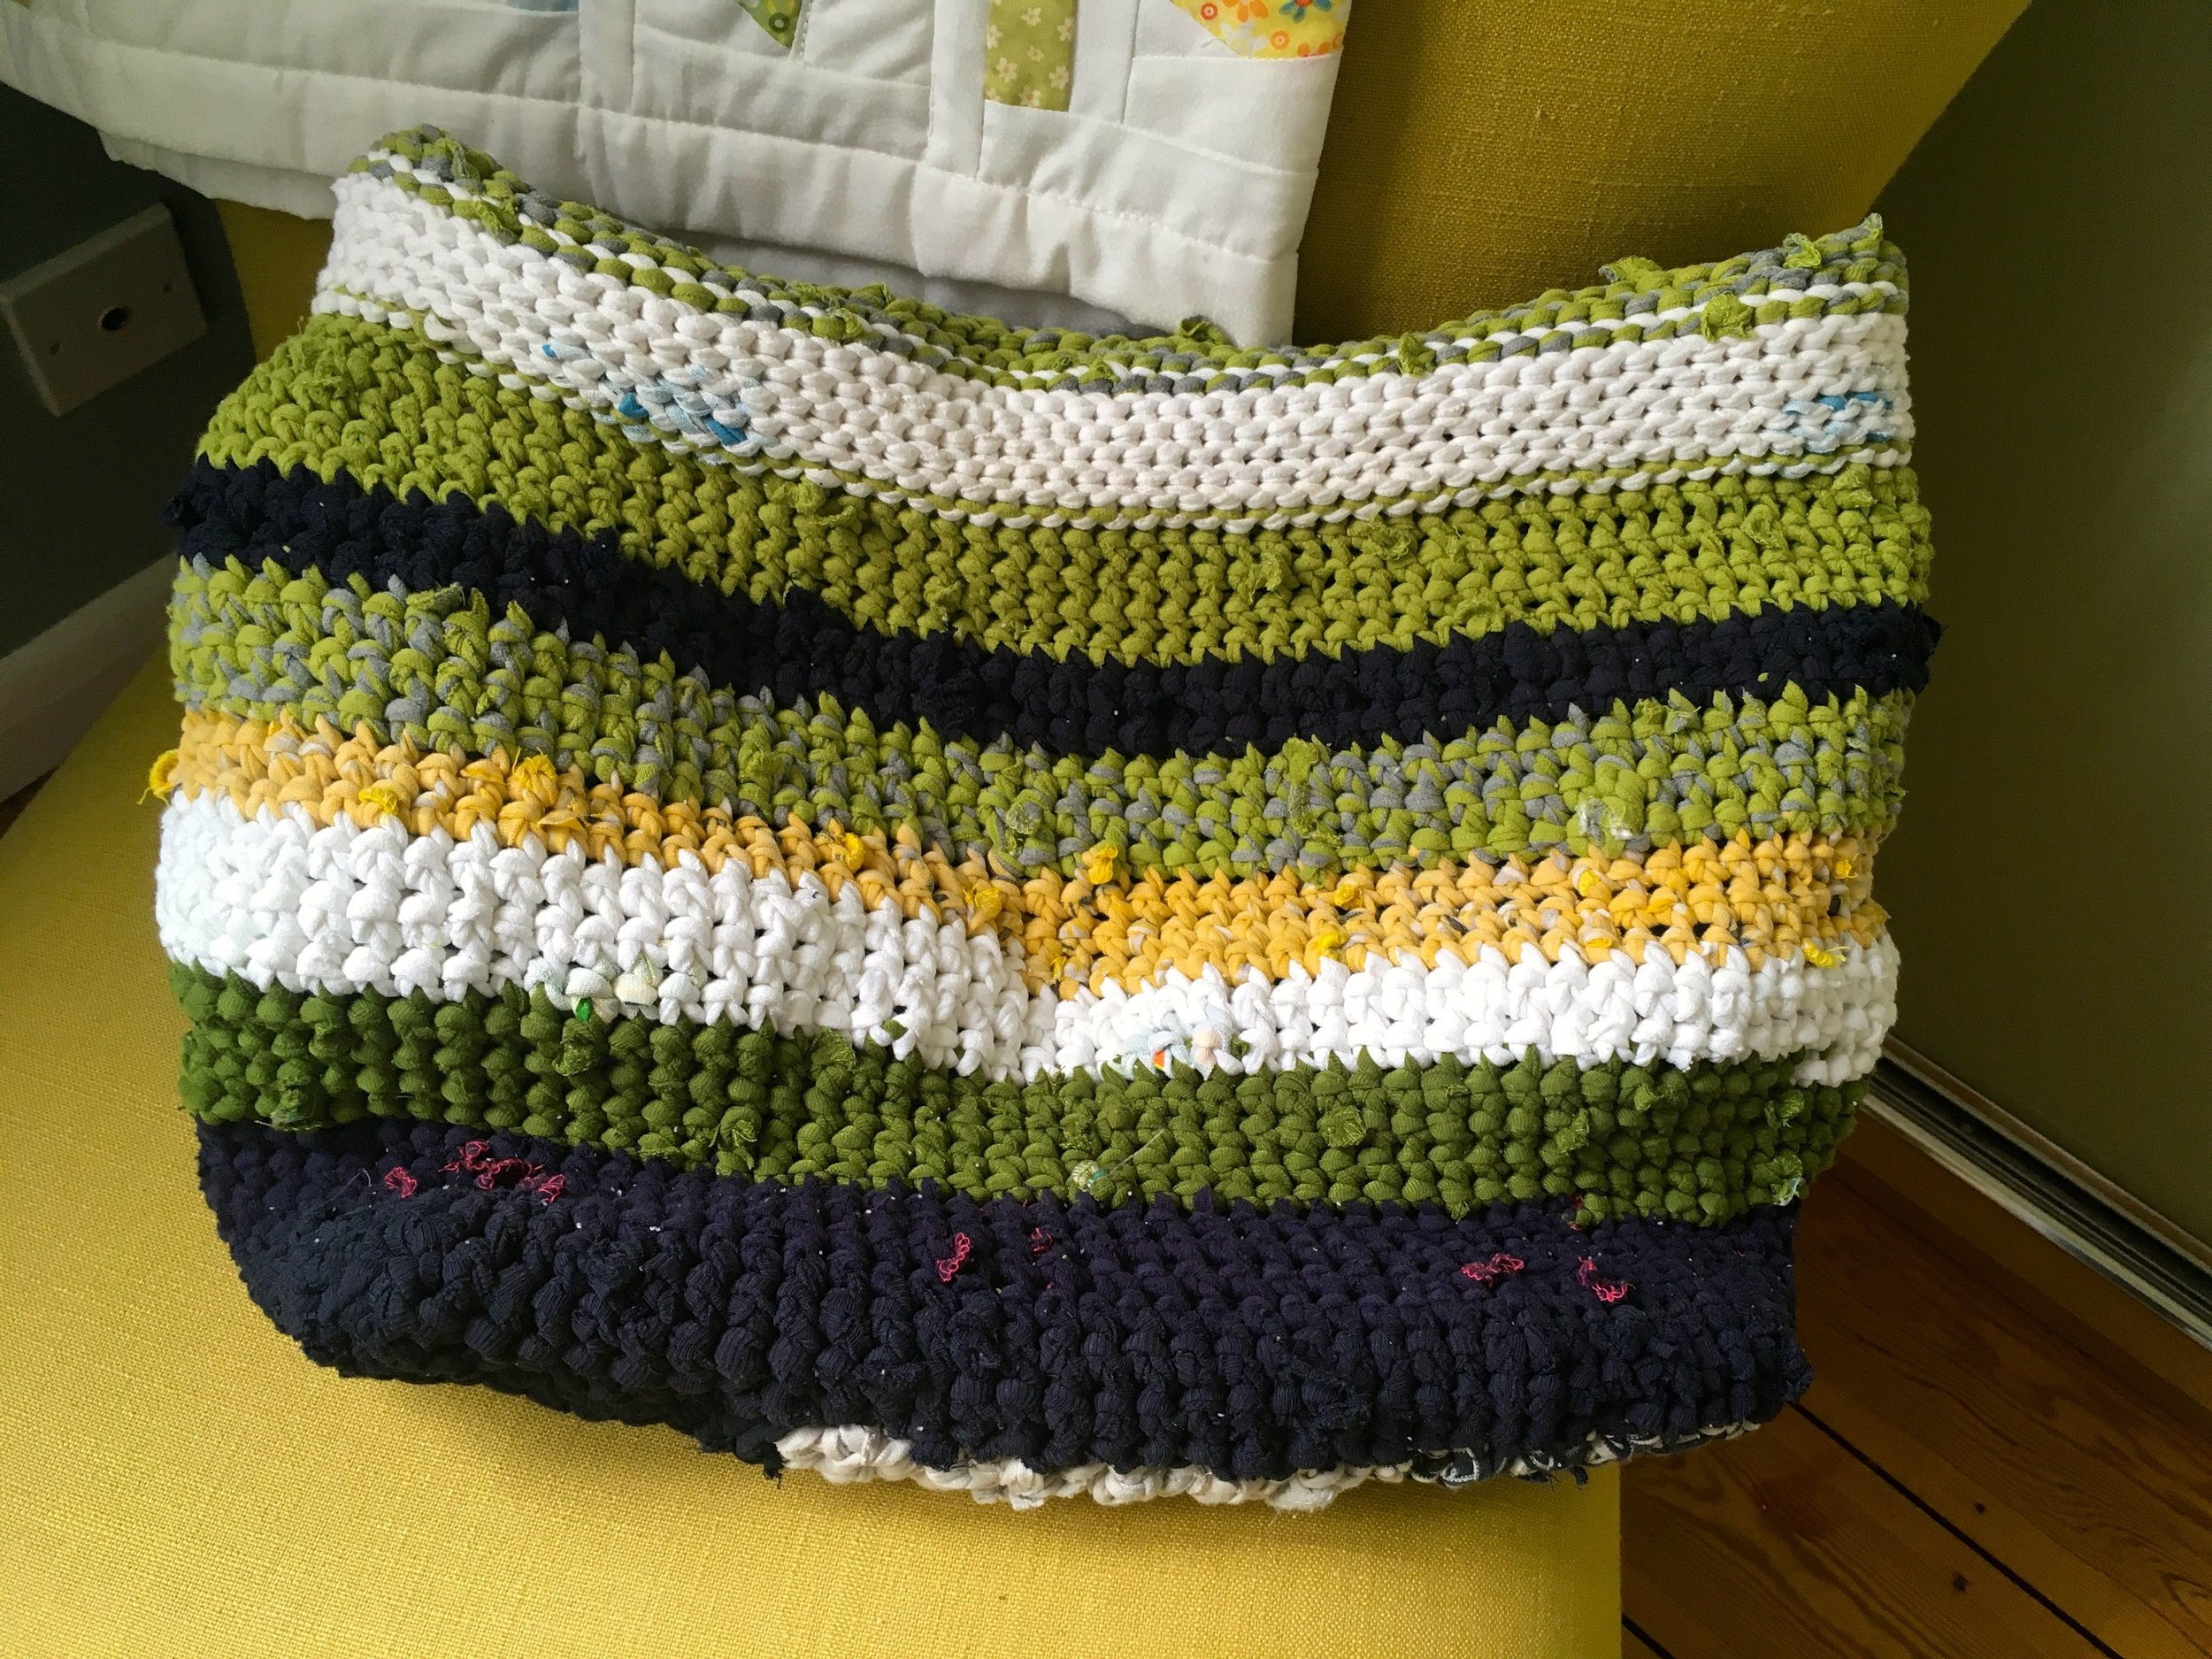 A completed crochet basket made from around 12 old t shirts